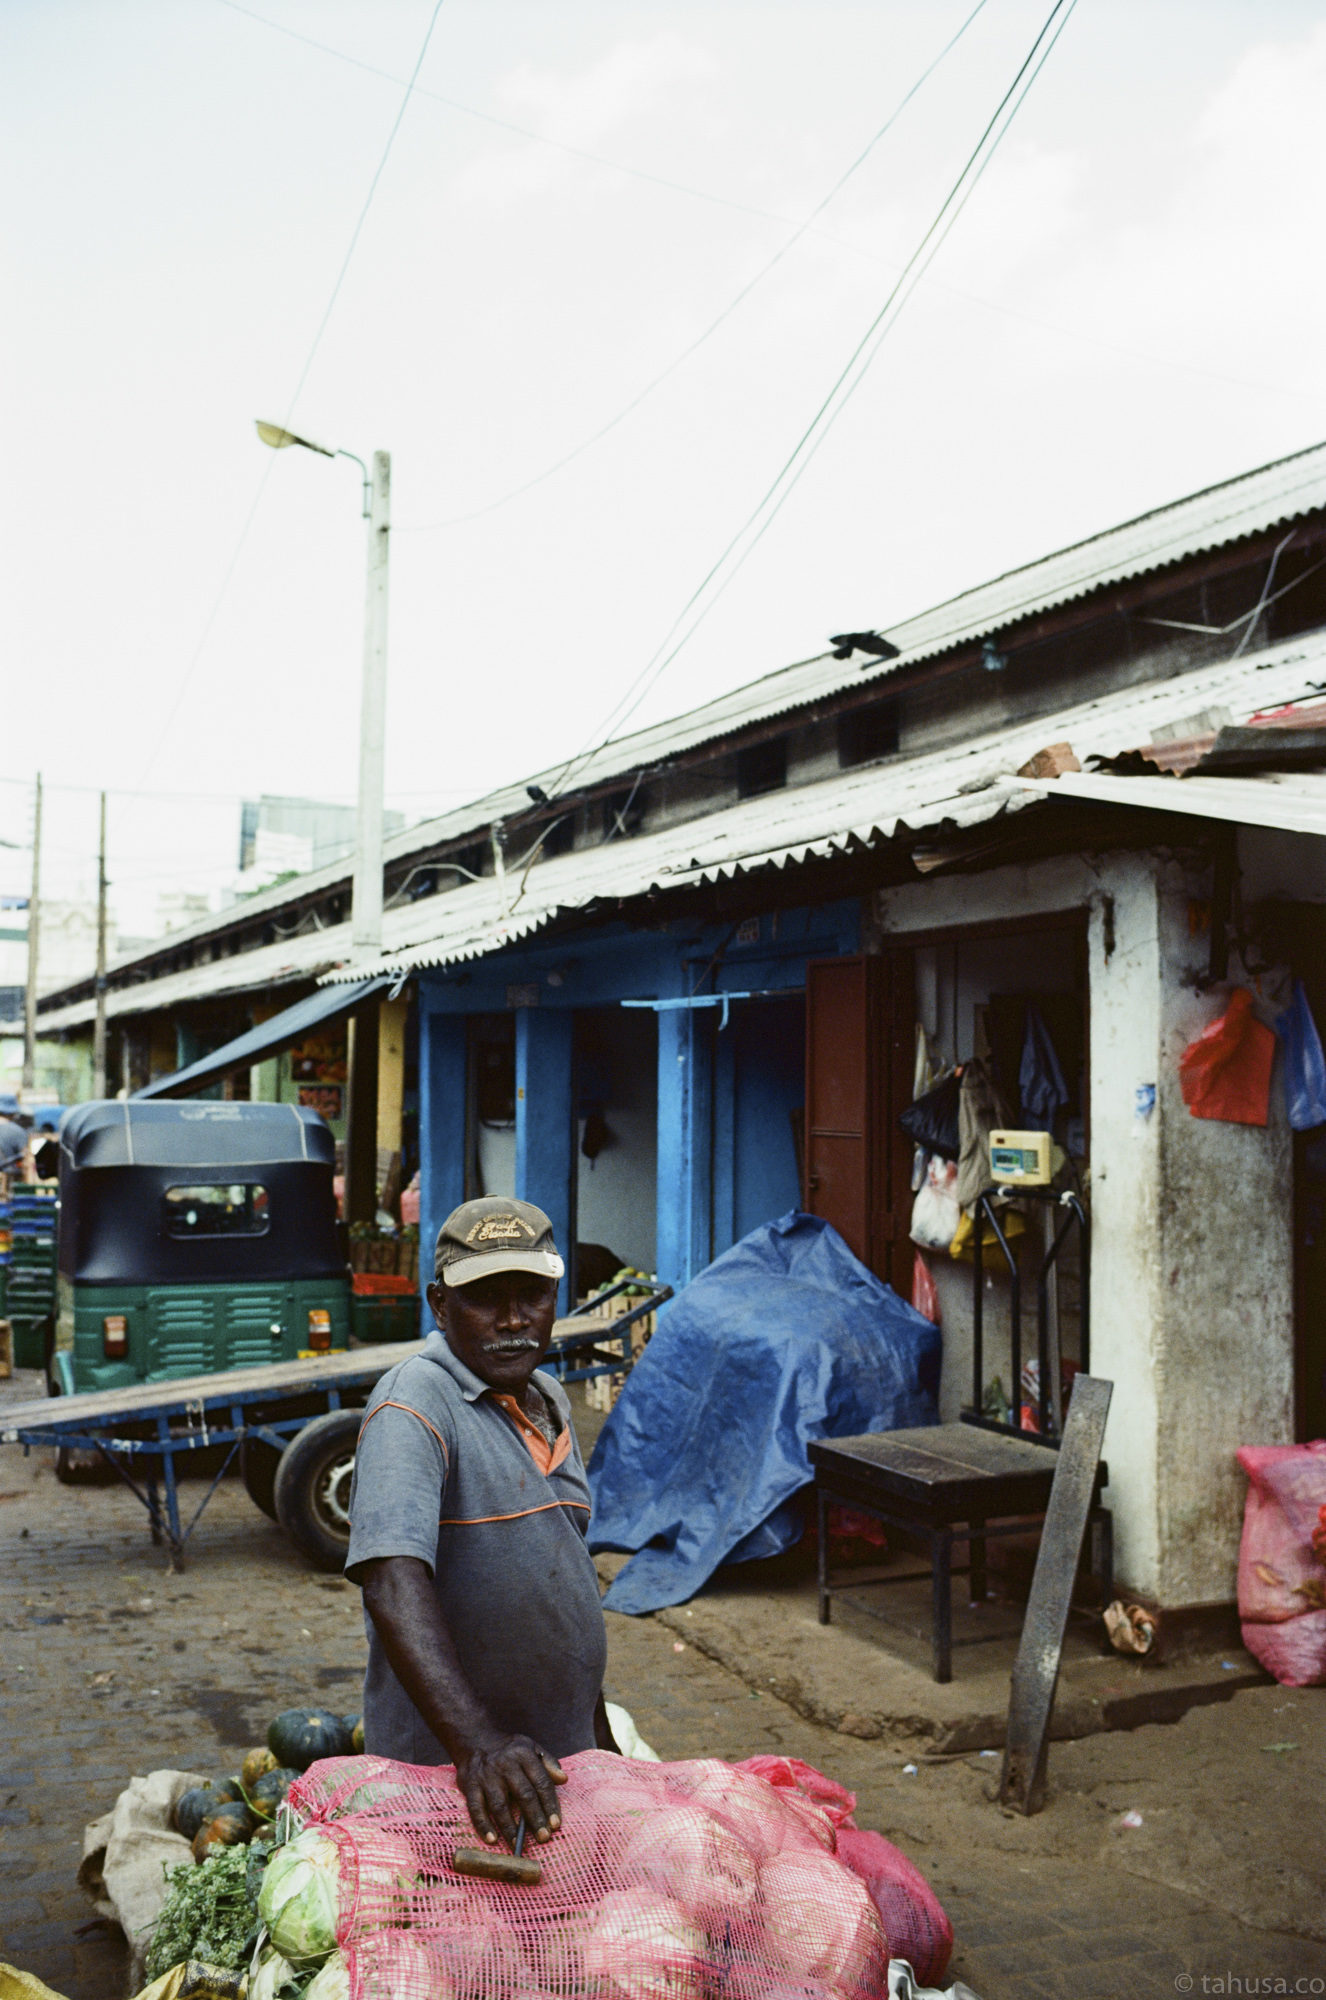 Pettah-market-daily-in-colombo-sri-lanka-travel-photography-using-ektar-100-kodak-and-summilux-35mm-f1.4-asph-fle-leica-film